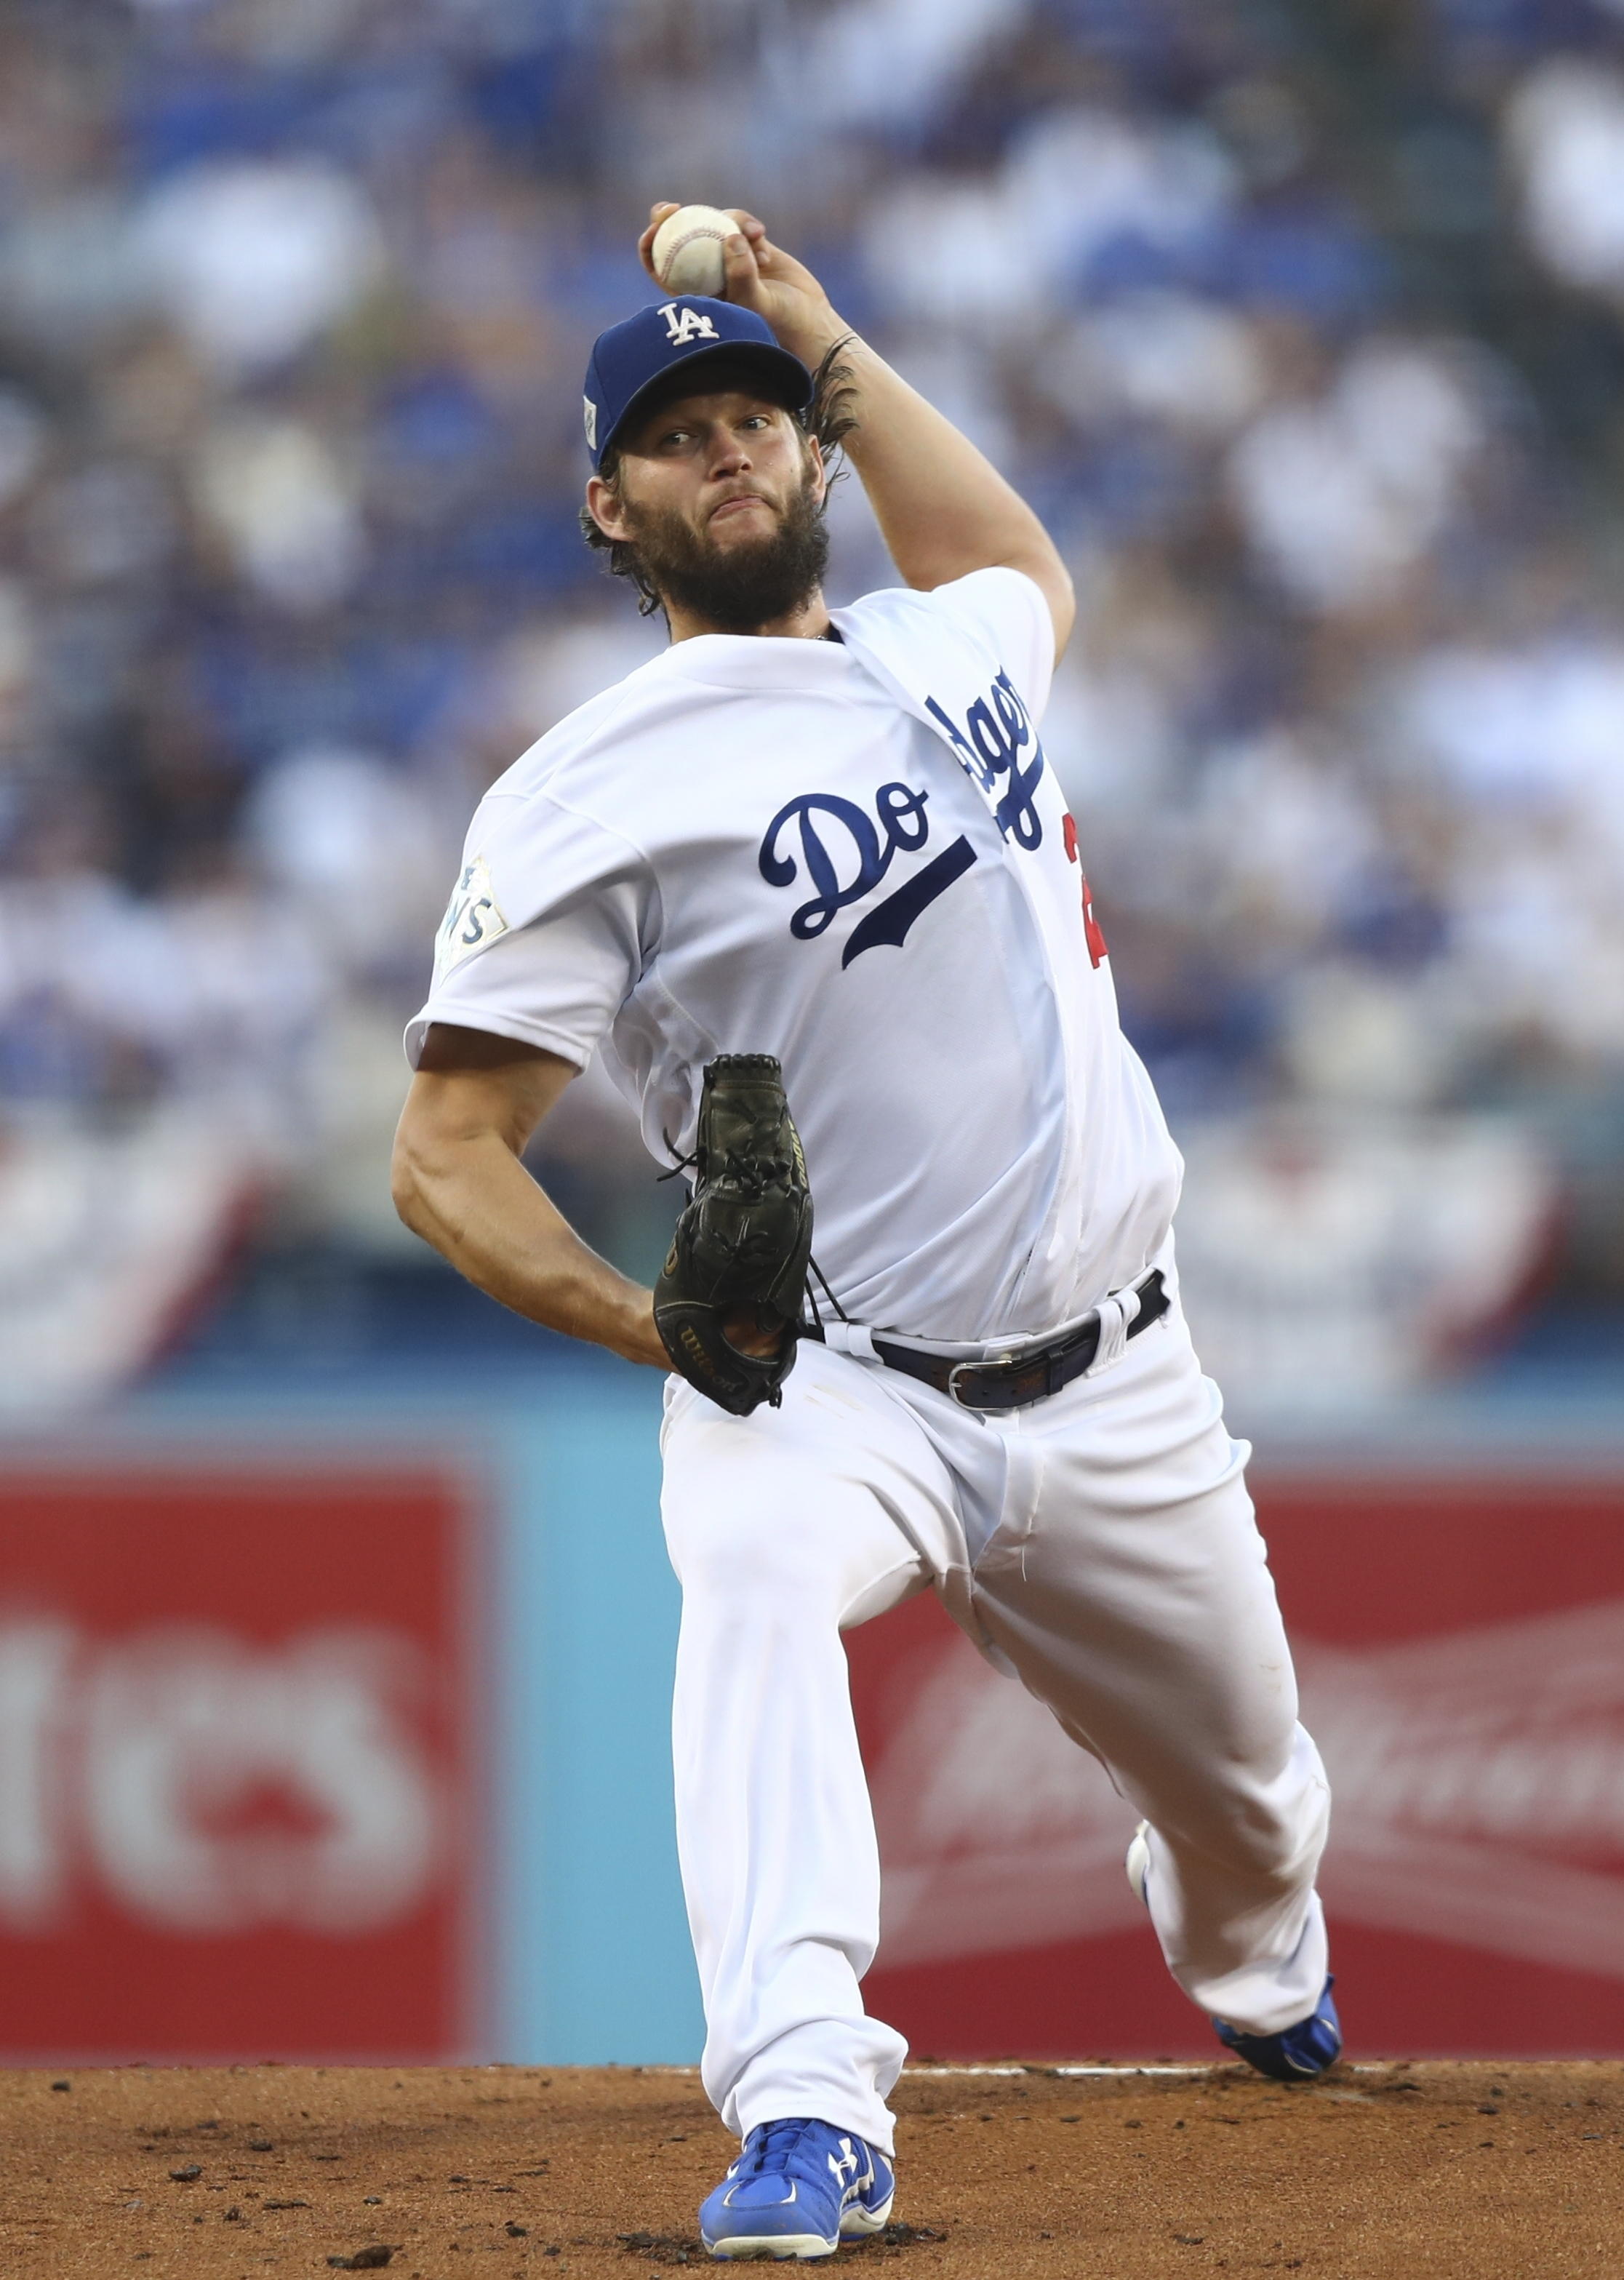 Los Angeles Dodgers starting pitcher Clayton Kershaw throws during the first inning of Game 1 of baseball's World Series against the Houston Astros Tuesday, Oct. 24, 2017, in Los Angeles. (AP Photo/Tim Bradbury, Pool)